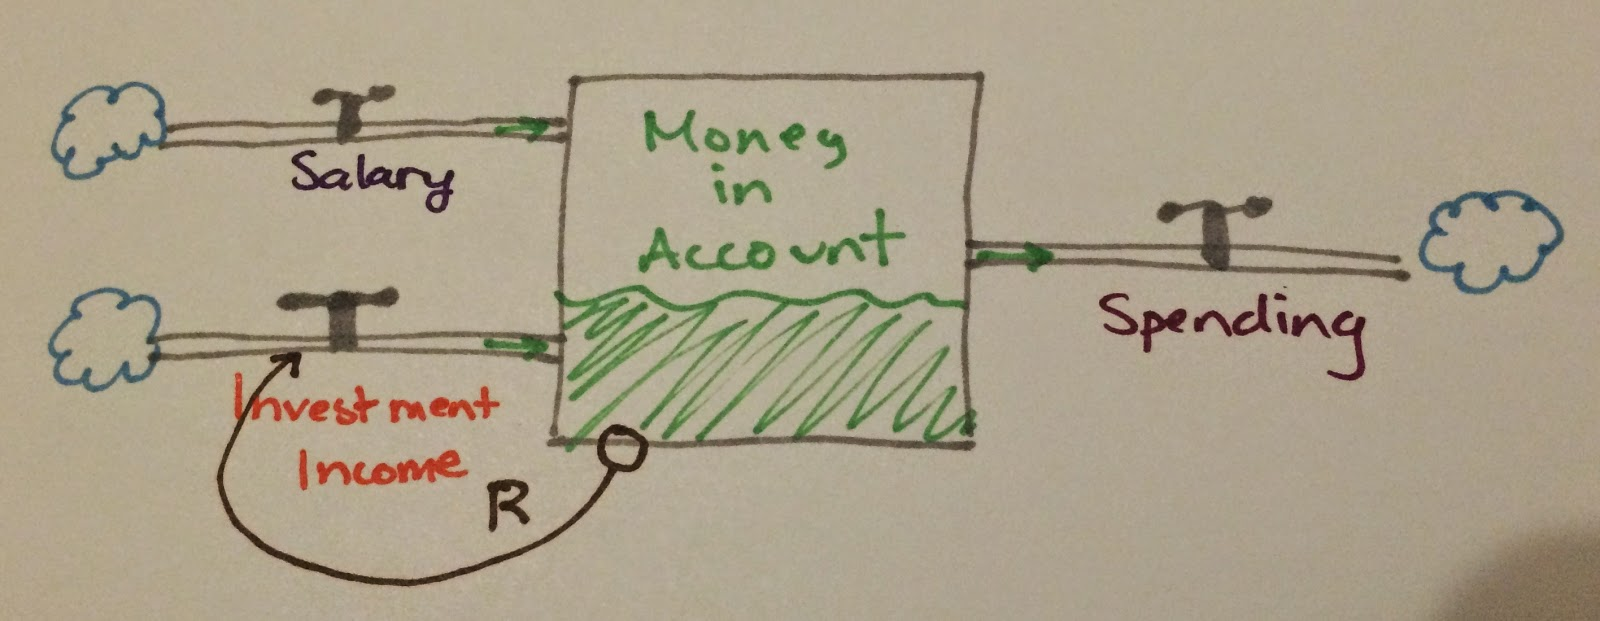 salary and investment income flow into the account; spending flows out. An arrow indicates that the amount in the account affects the investment flow rate.